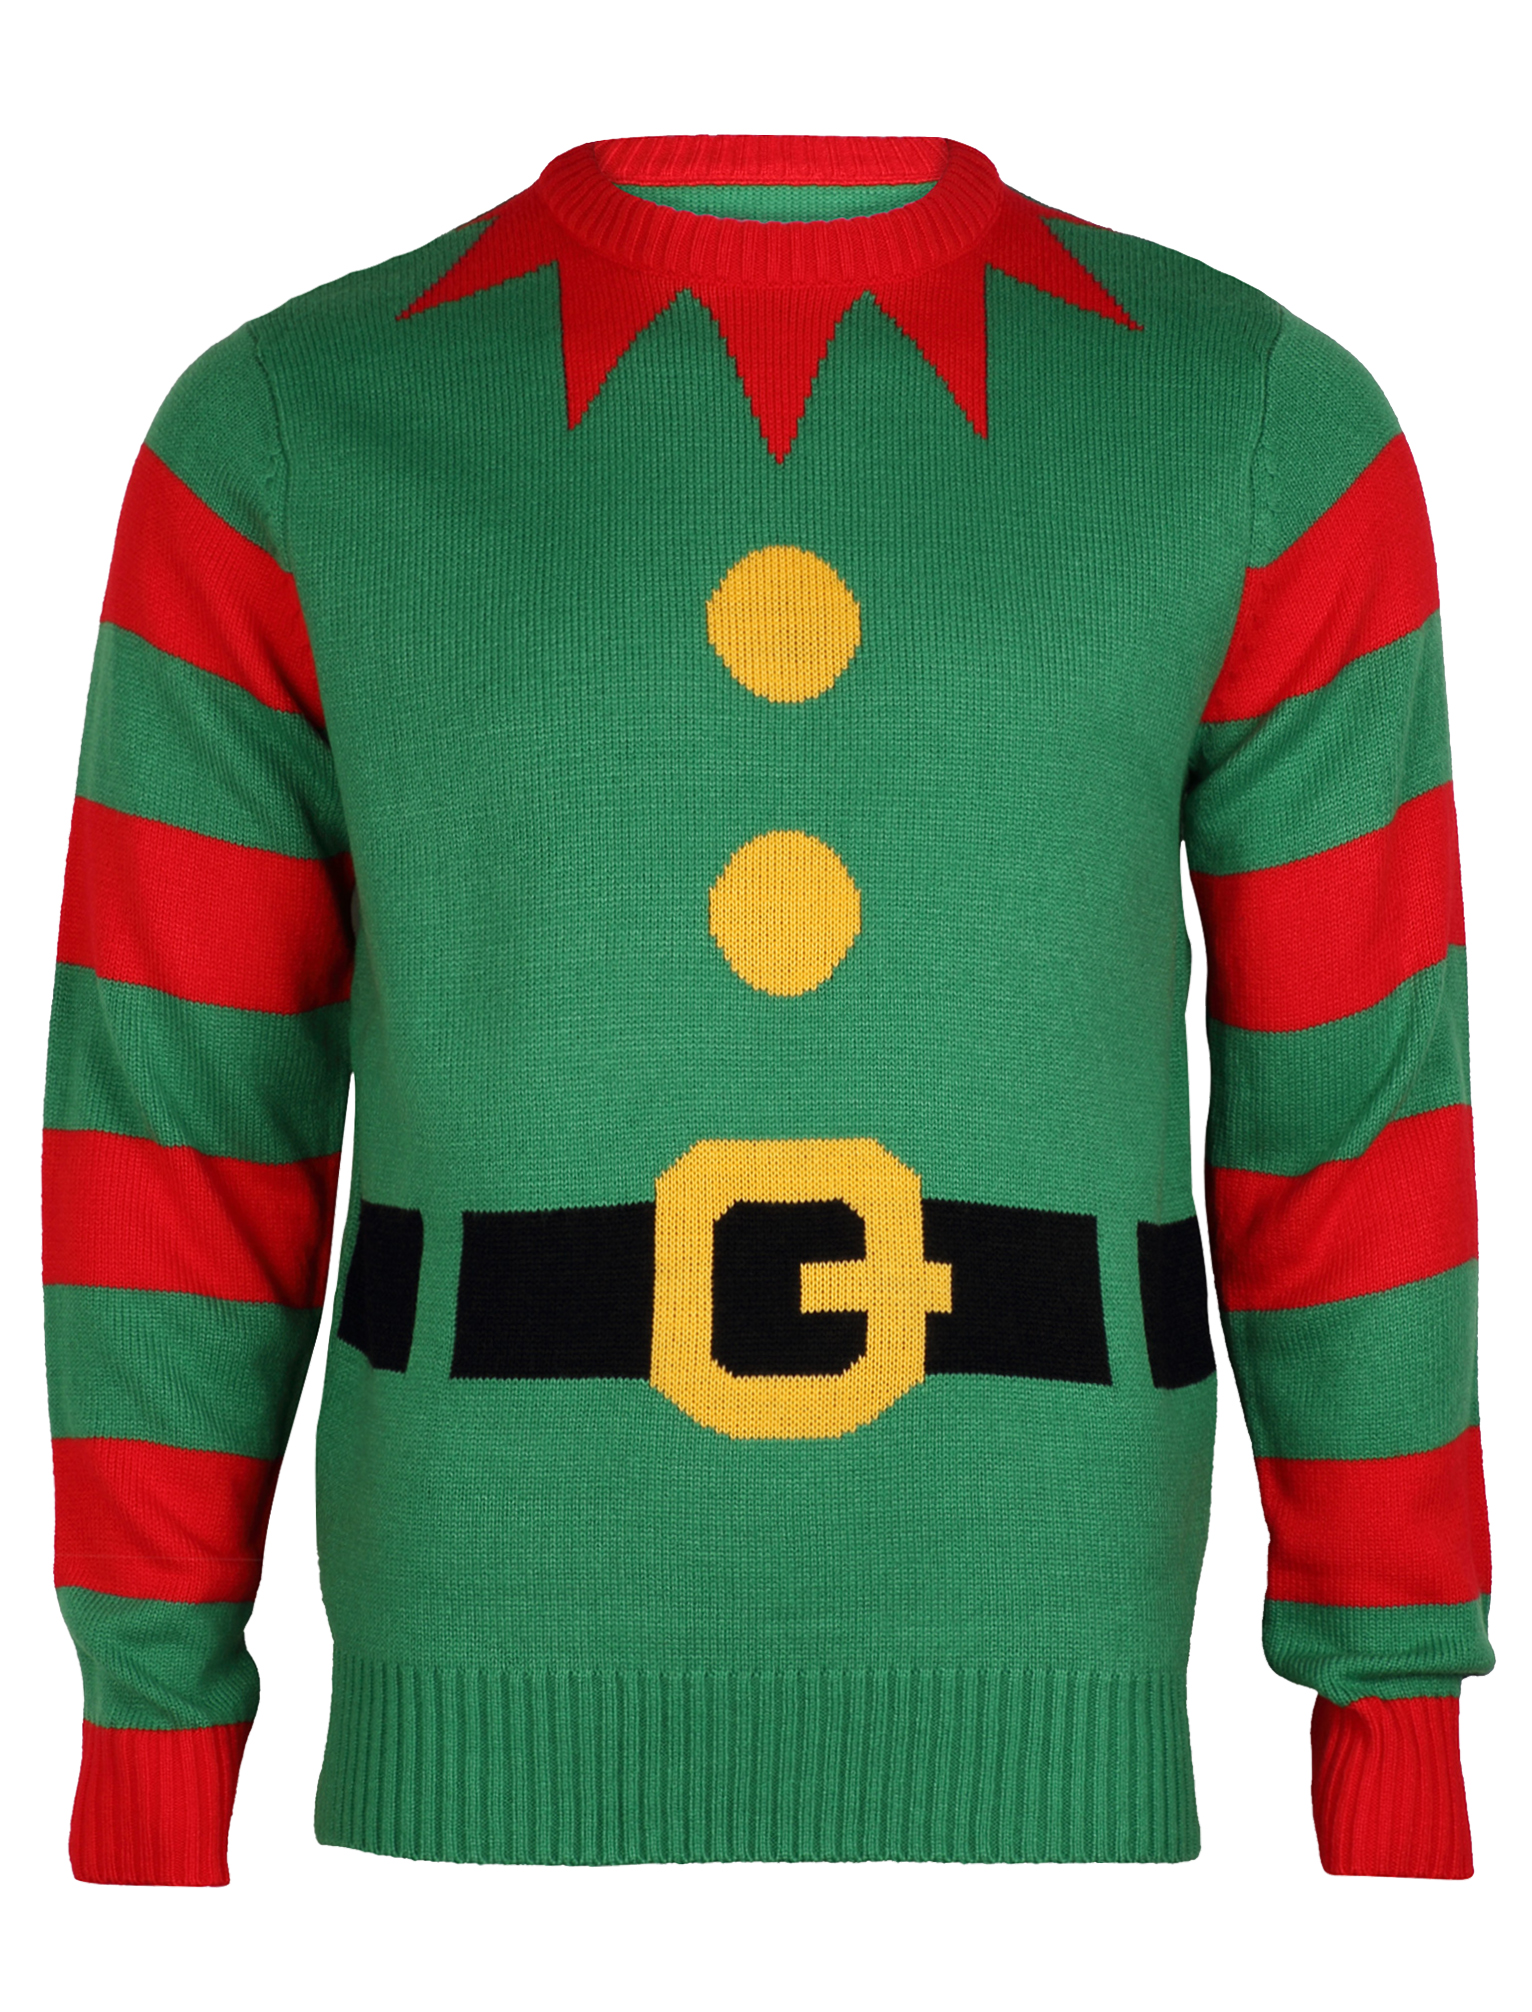 ... about Mens Merry Xmas Christmas Jumper Knit Sweater Novelty Santa Elf